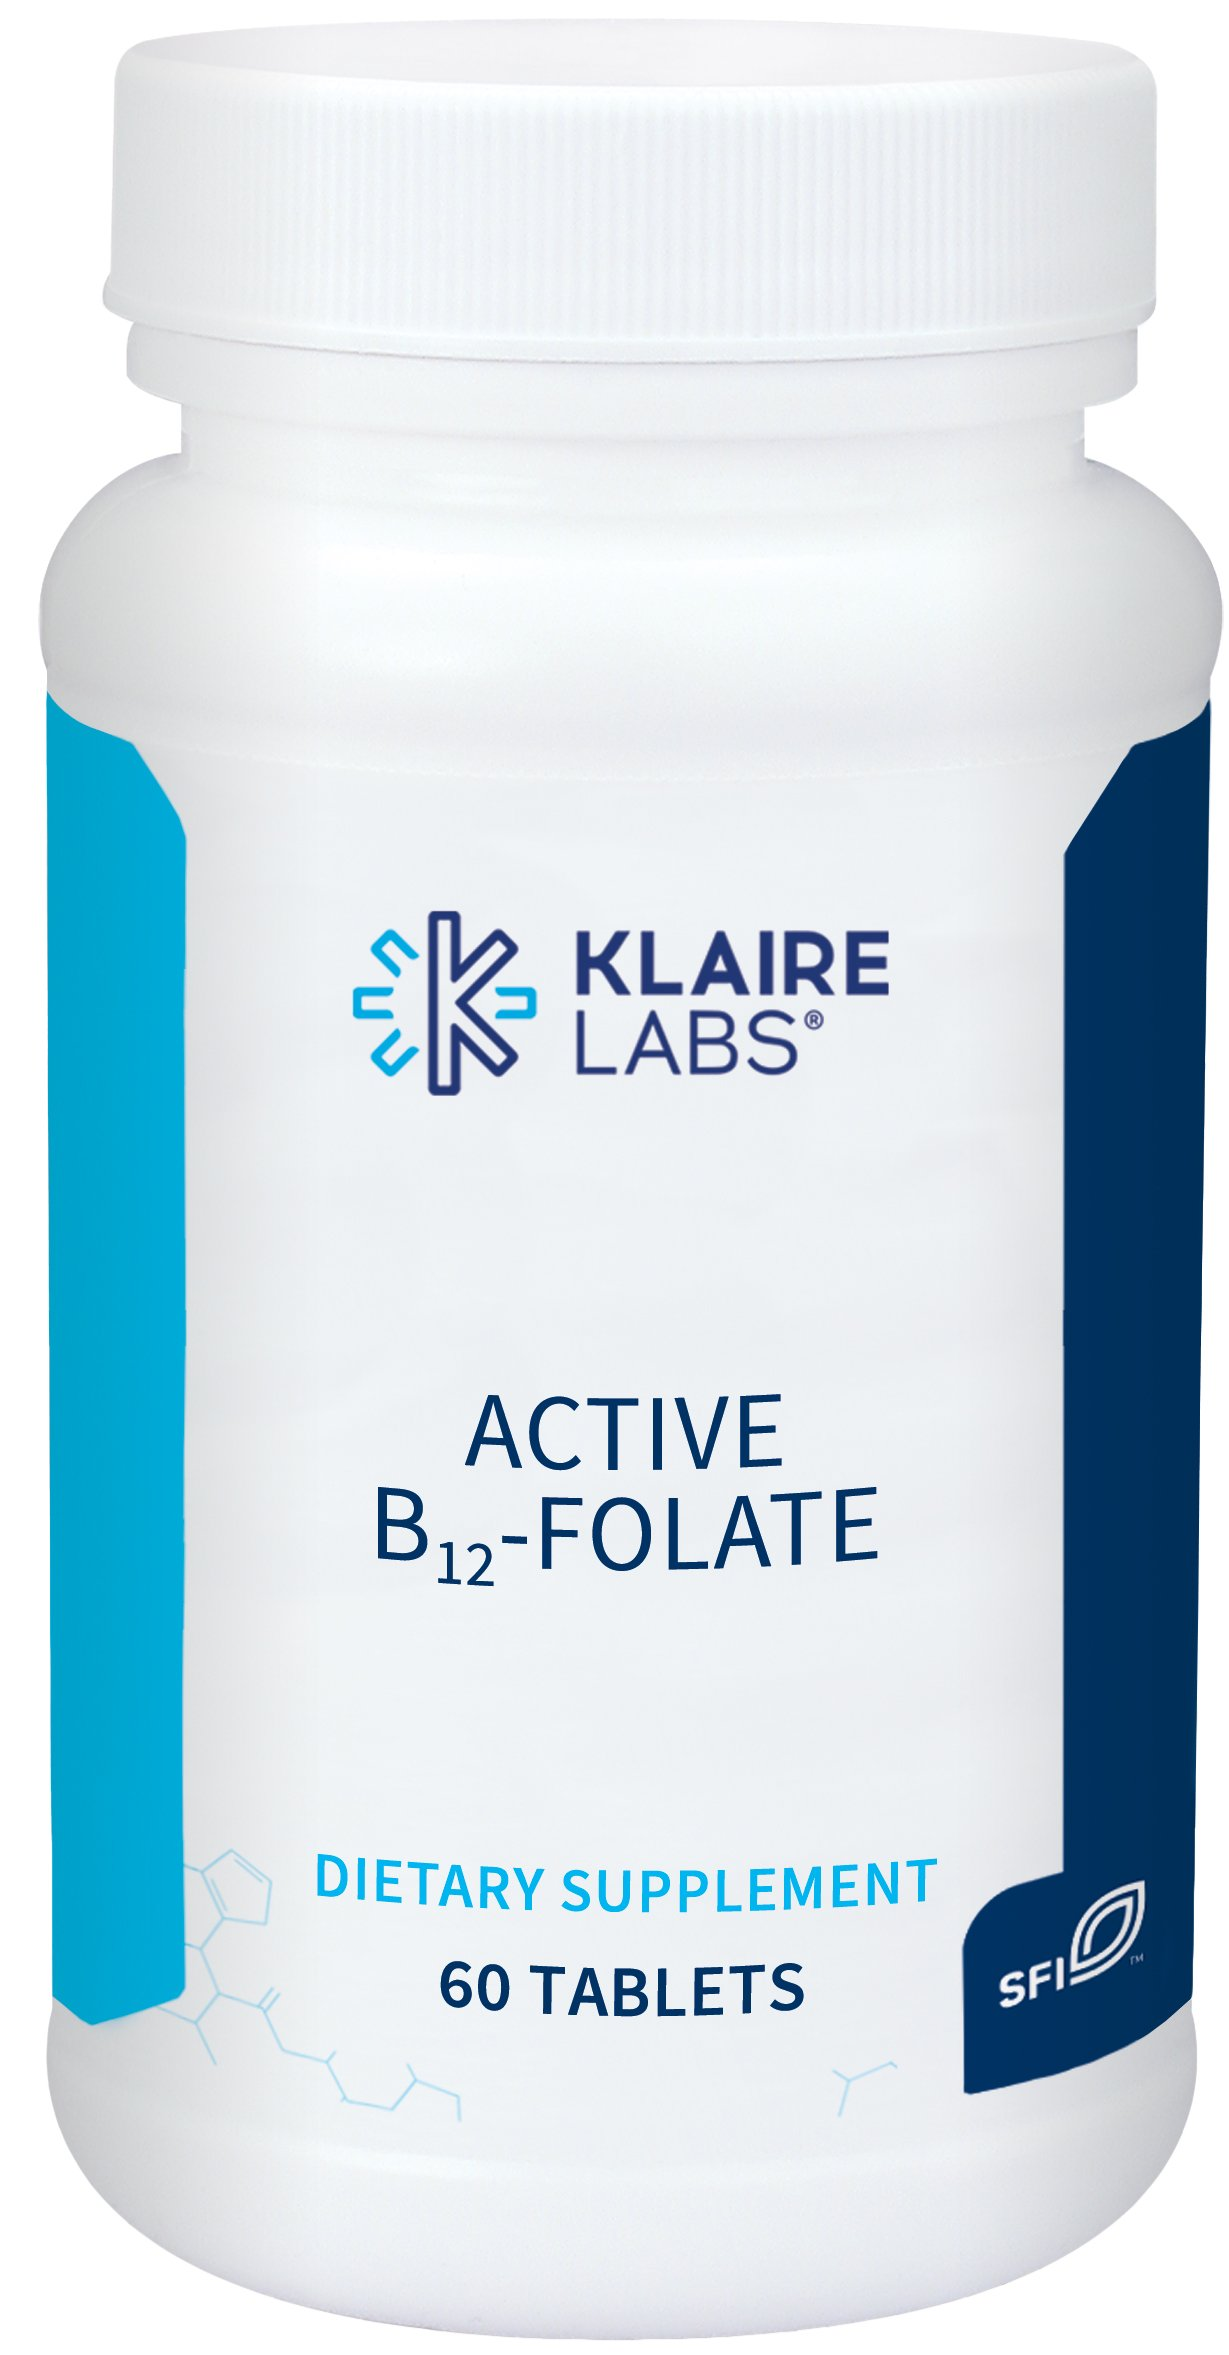 Klaire Labs Active B12-Folate Lozenges - High Potency Methylcobalamin and Metafolin Folate L-5-MTHF Vitamin Melts (60 Dissolvable Tablets)